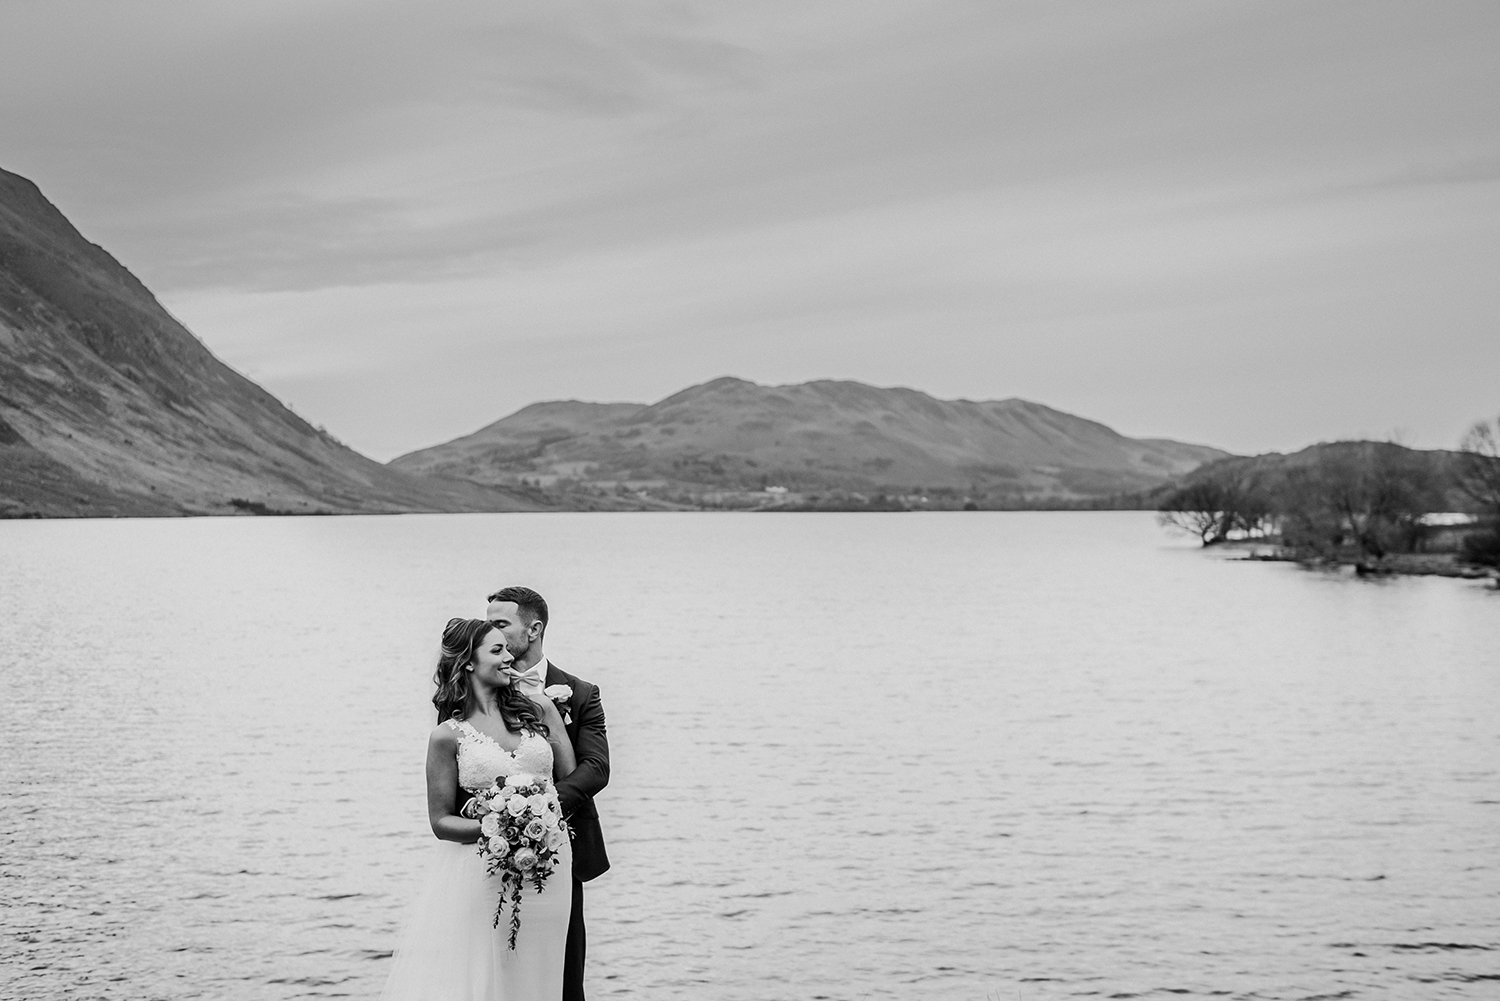 bw photo of the couple at the lake